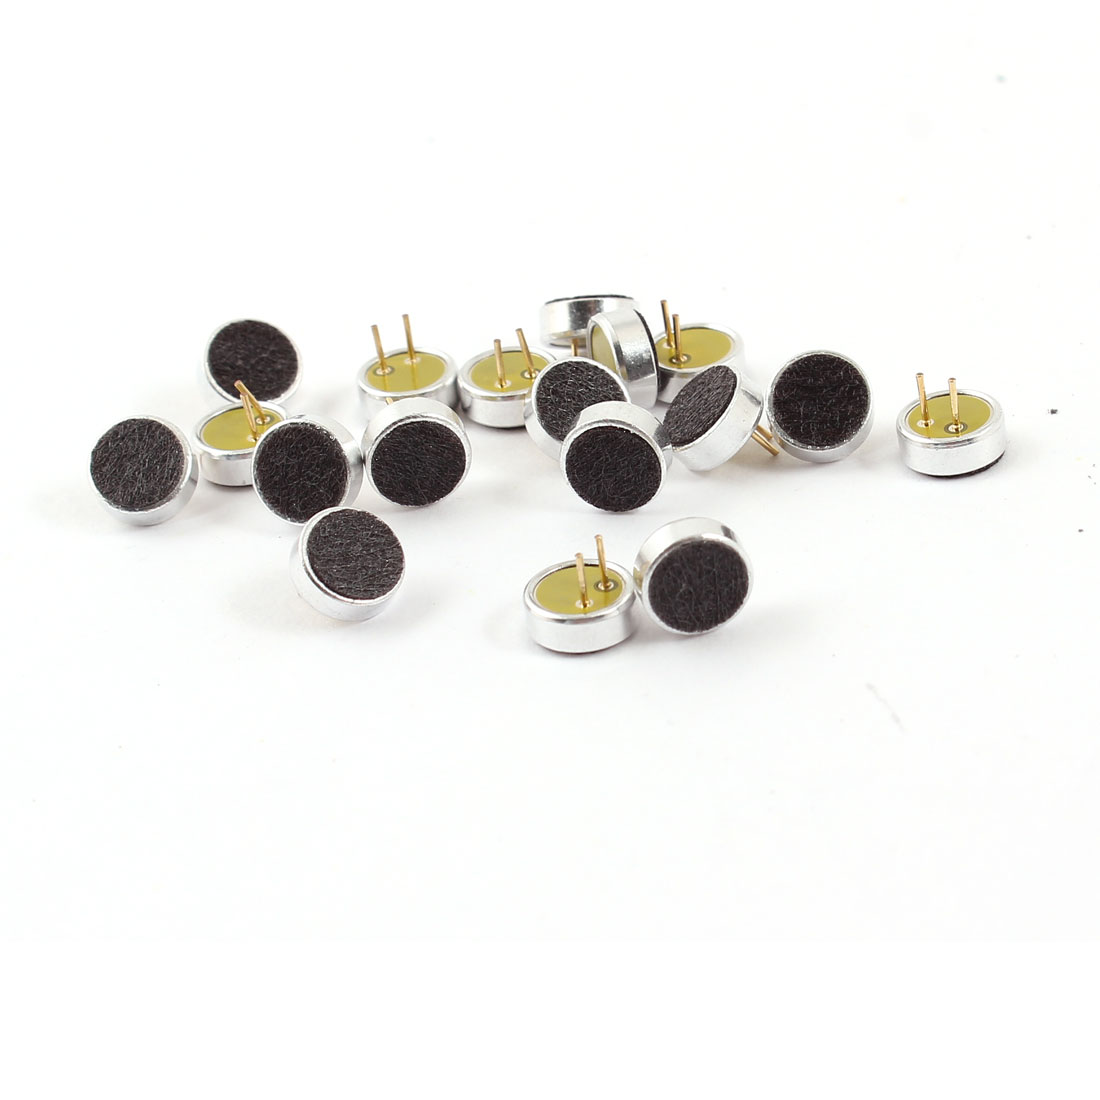 18 Pcs 2 Pin Round 6mm Dia Electret Condenser Microphone MIC Capsule